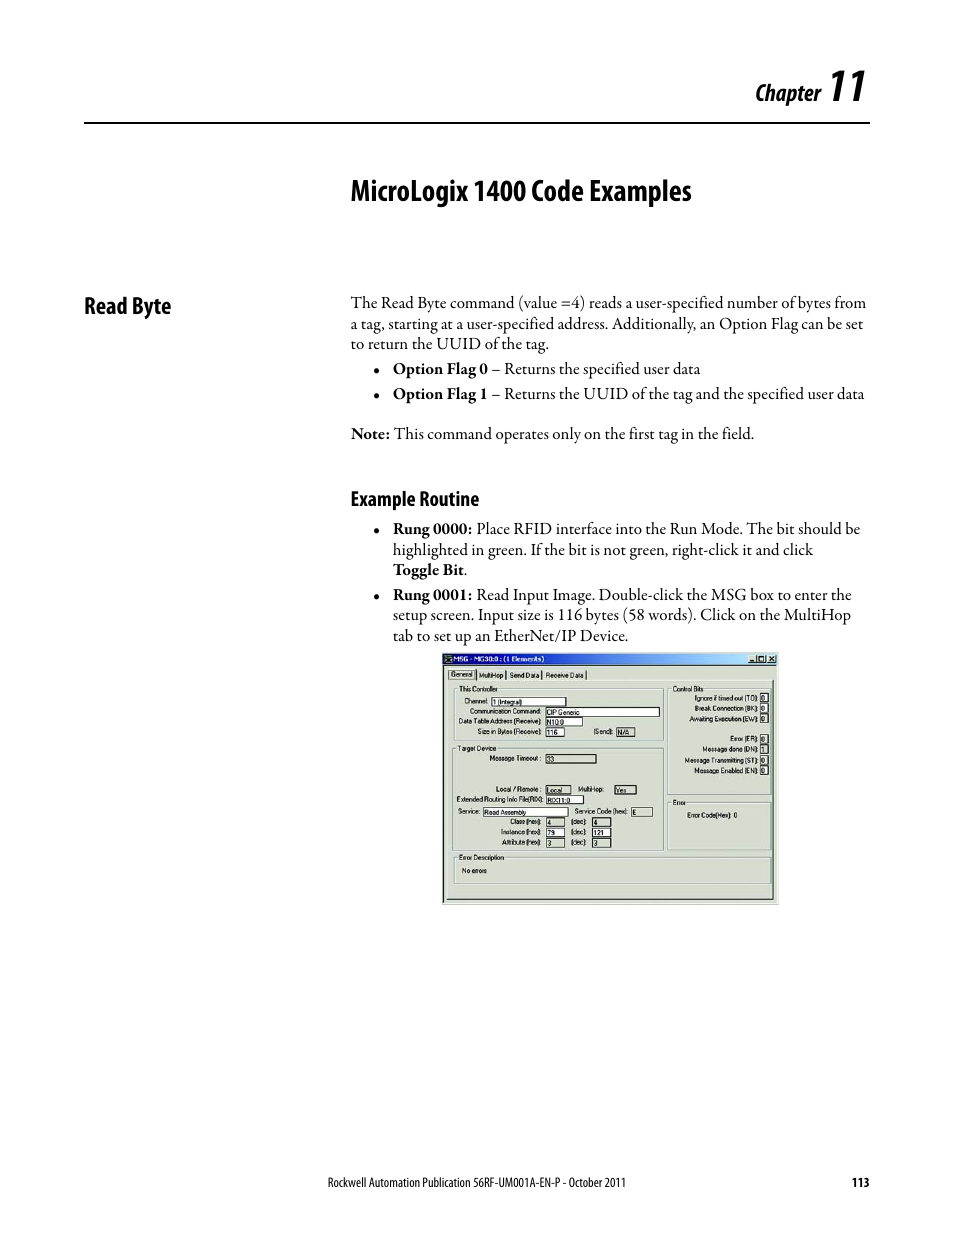 Micrologix 1400 code examples, Chapter, Read byte | Rockwell